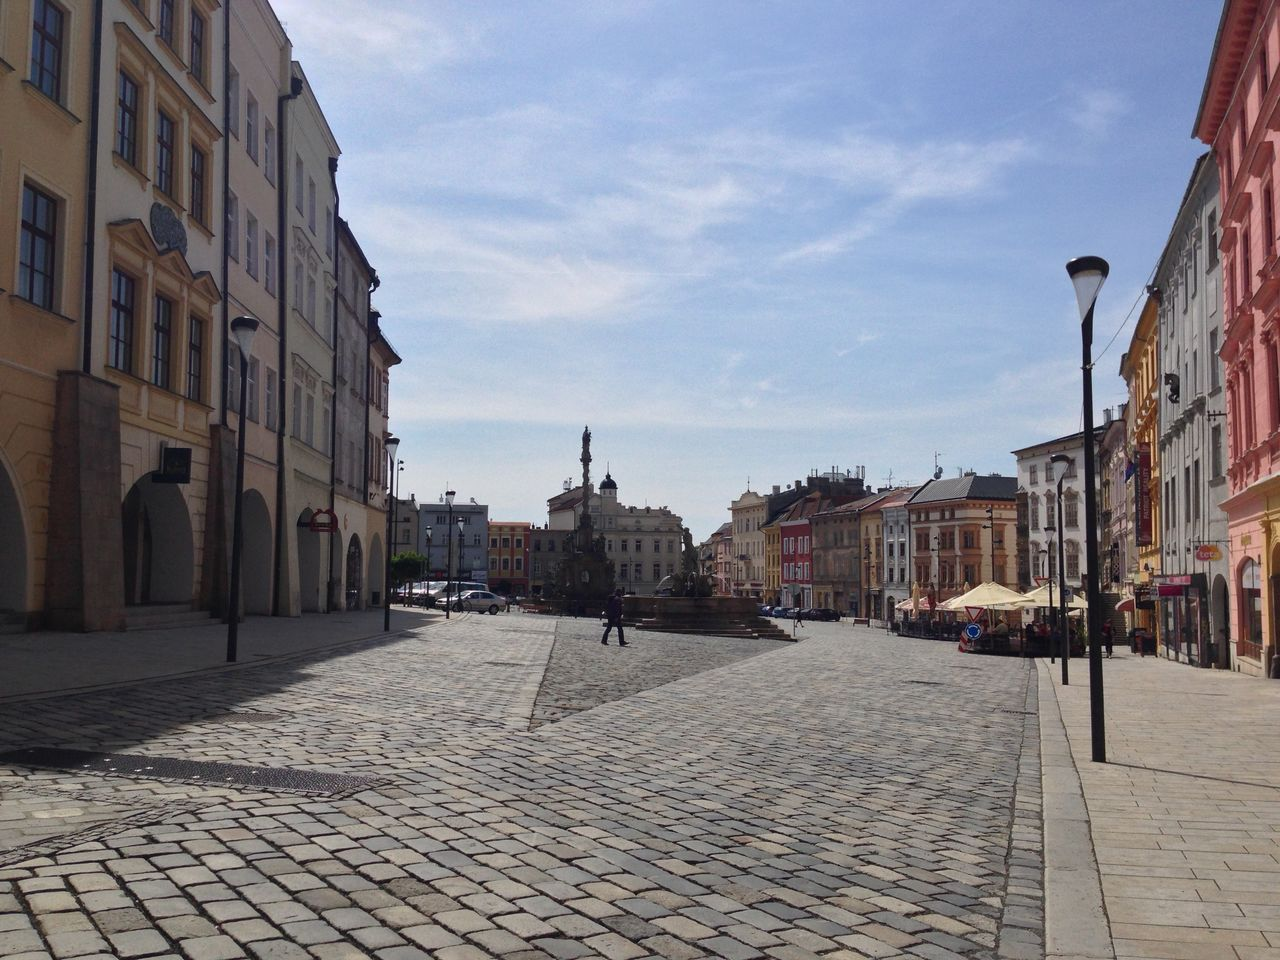 architecture, cobblestone, building exterior, sky, built structure, street, outdoors, old town, day, cloud - sky, city, town, no people